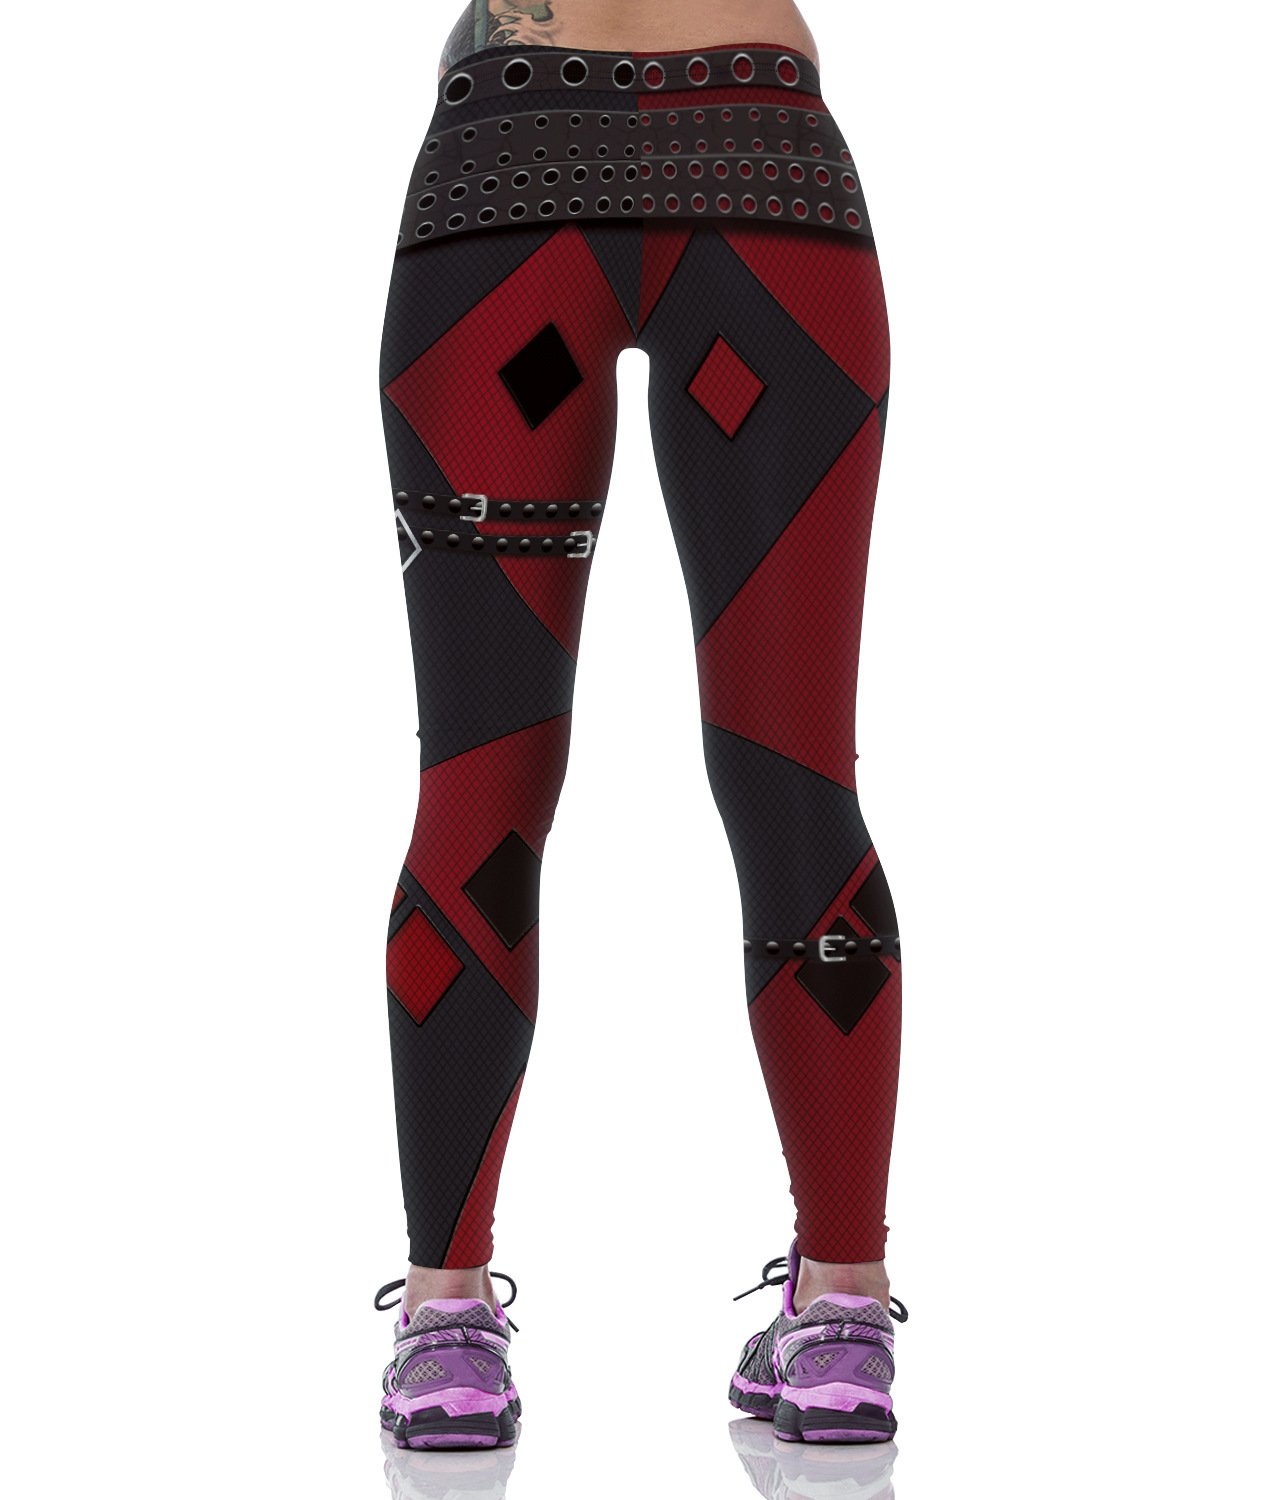 2017 Woman Harley Quinn Running Fitness Capris Pants Sports Tights Yoga Leggings